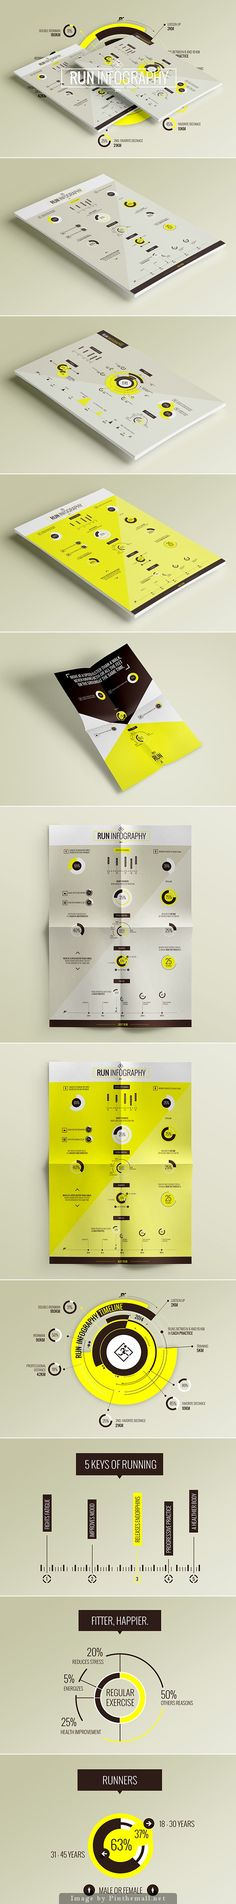 RUN / Infography Data Sheets by Martín Liveratore Share